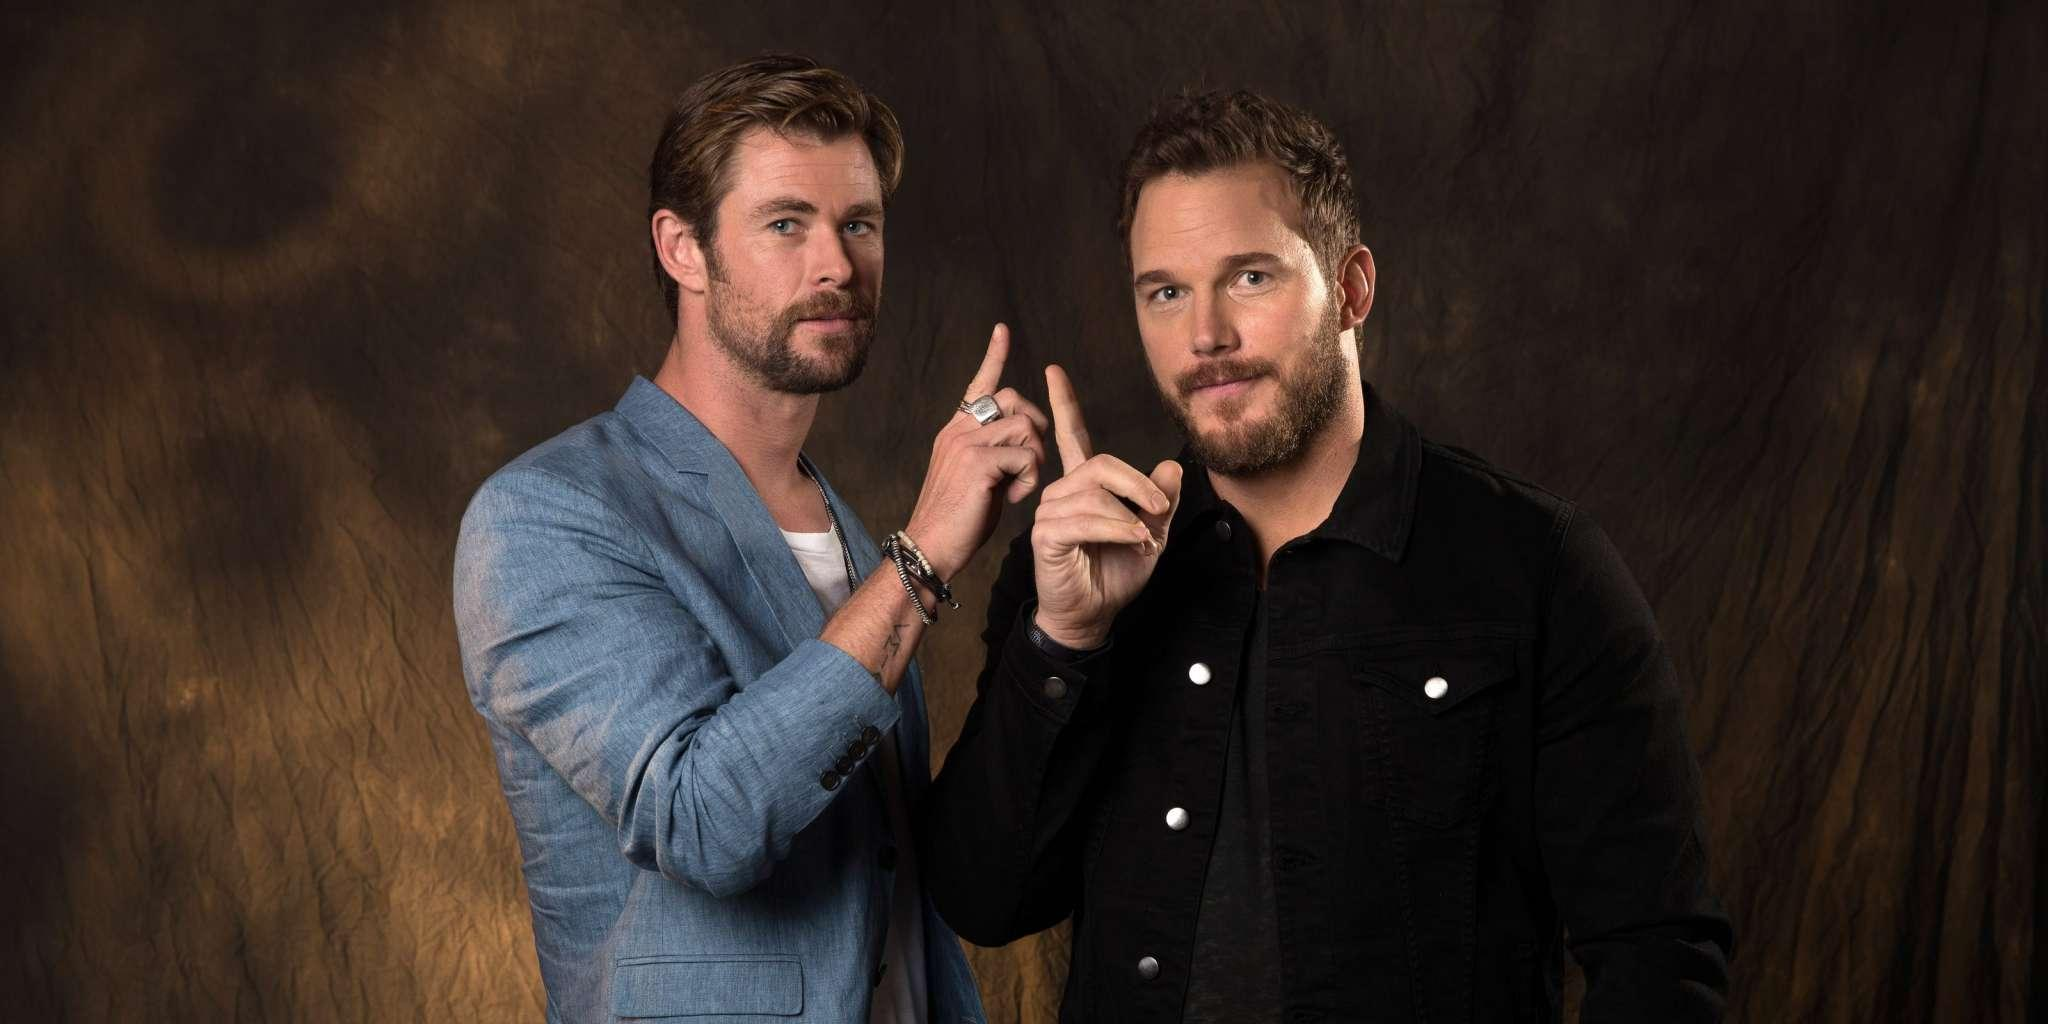 Chris Hemsworth Hilariously Confuses Chris Evans With Another Famous Chris In Birthday Tribute!